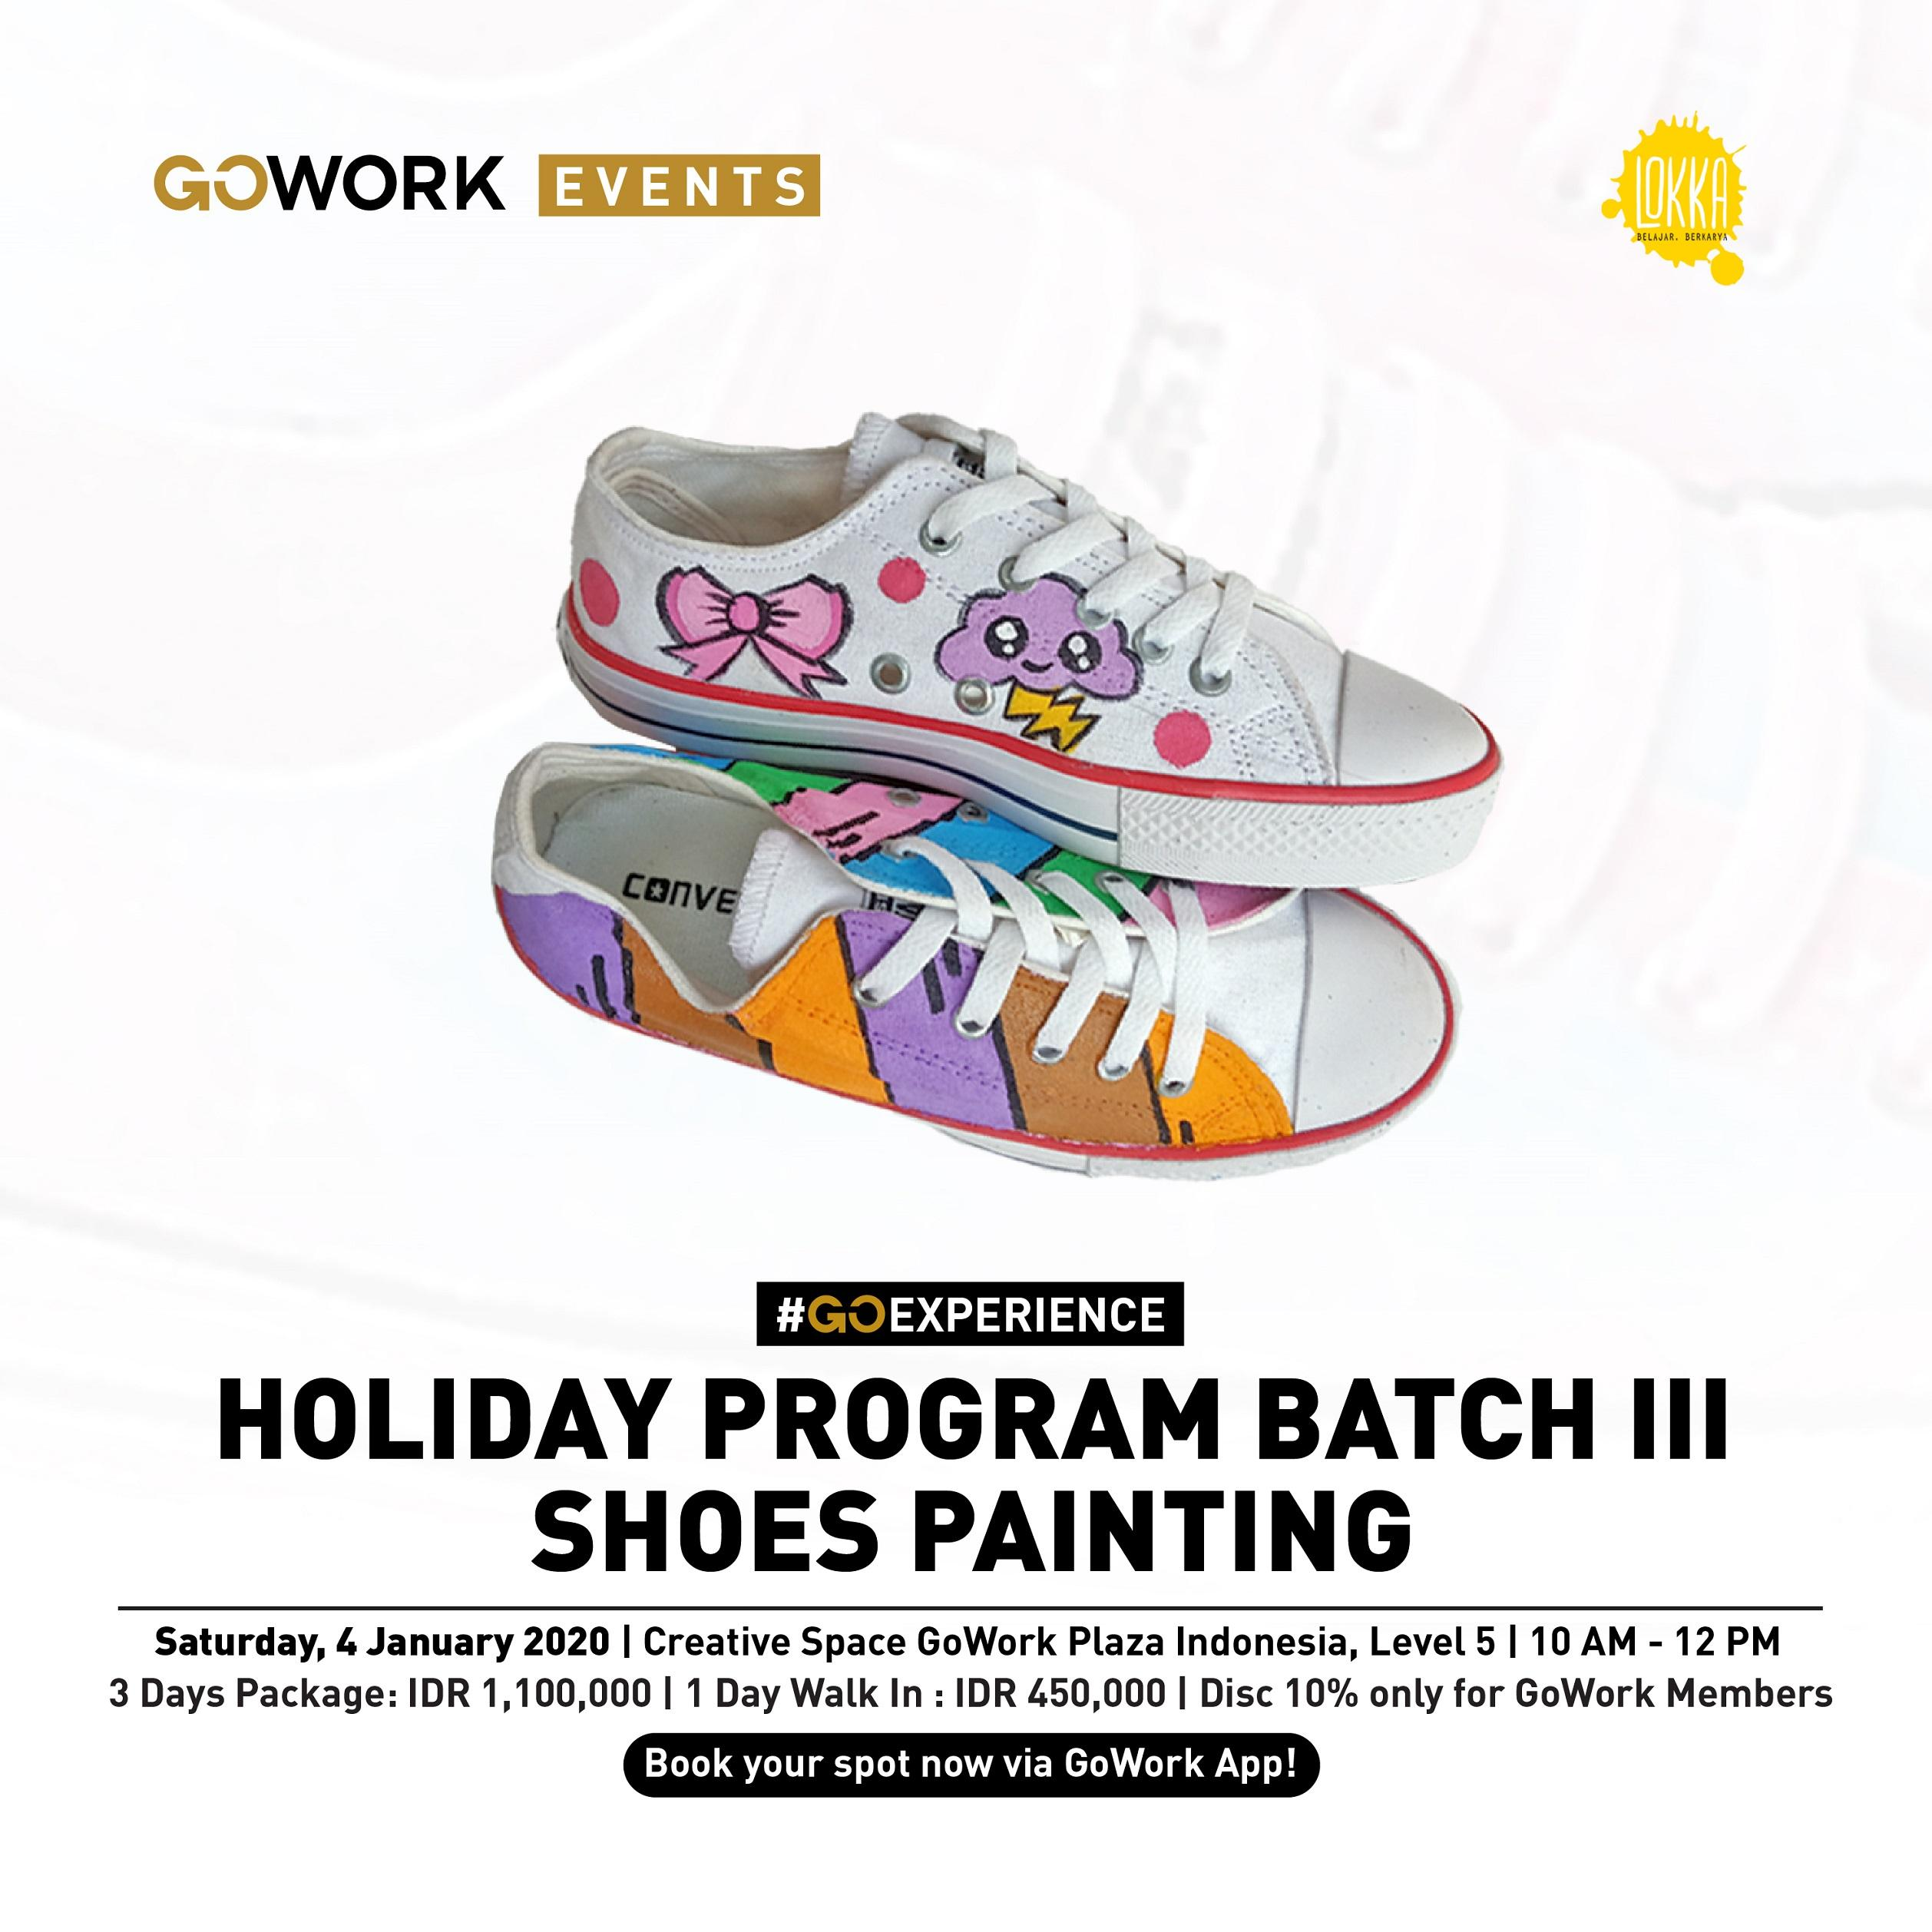 Lokka Holiday Program Batch III : Shoes Painting